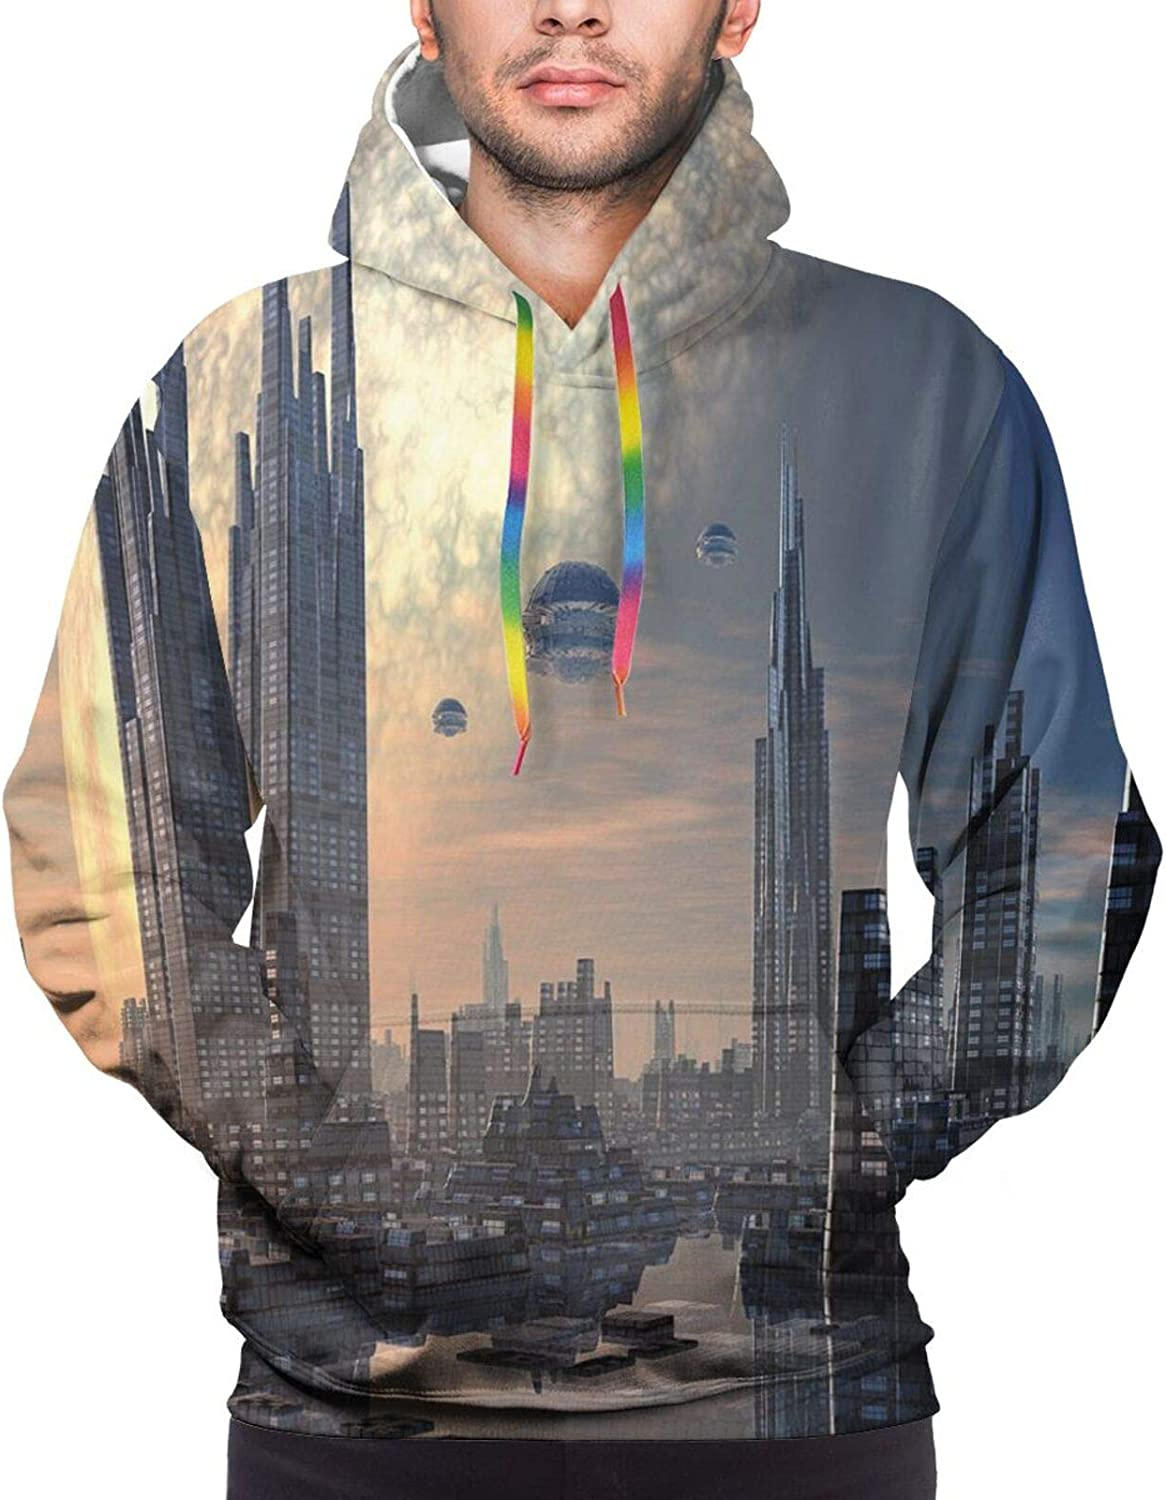 Men's Hoodies Sweatshirts,Space Theme View of The Planets from Earth Science Room Art with Sun and Moon